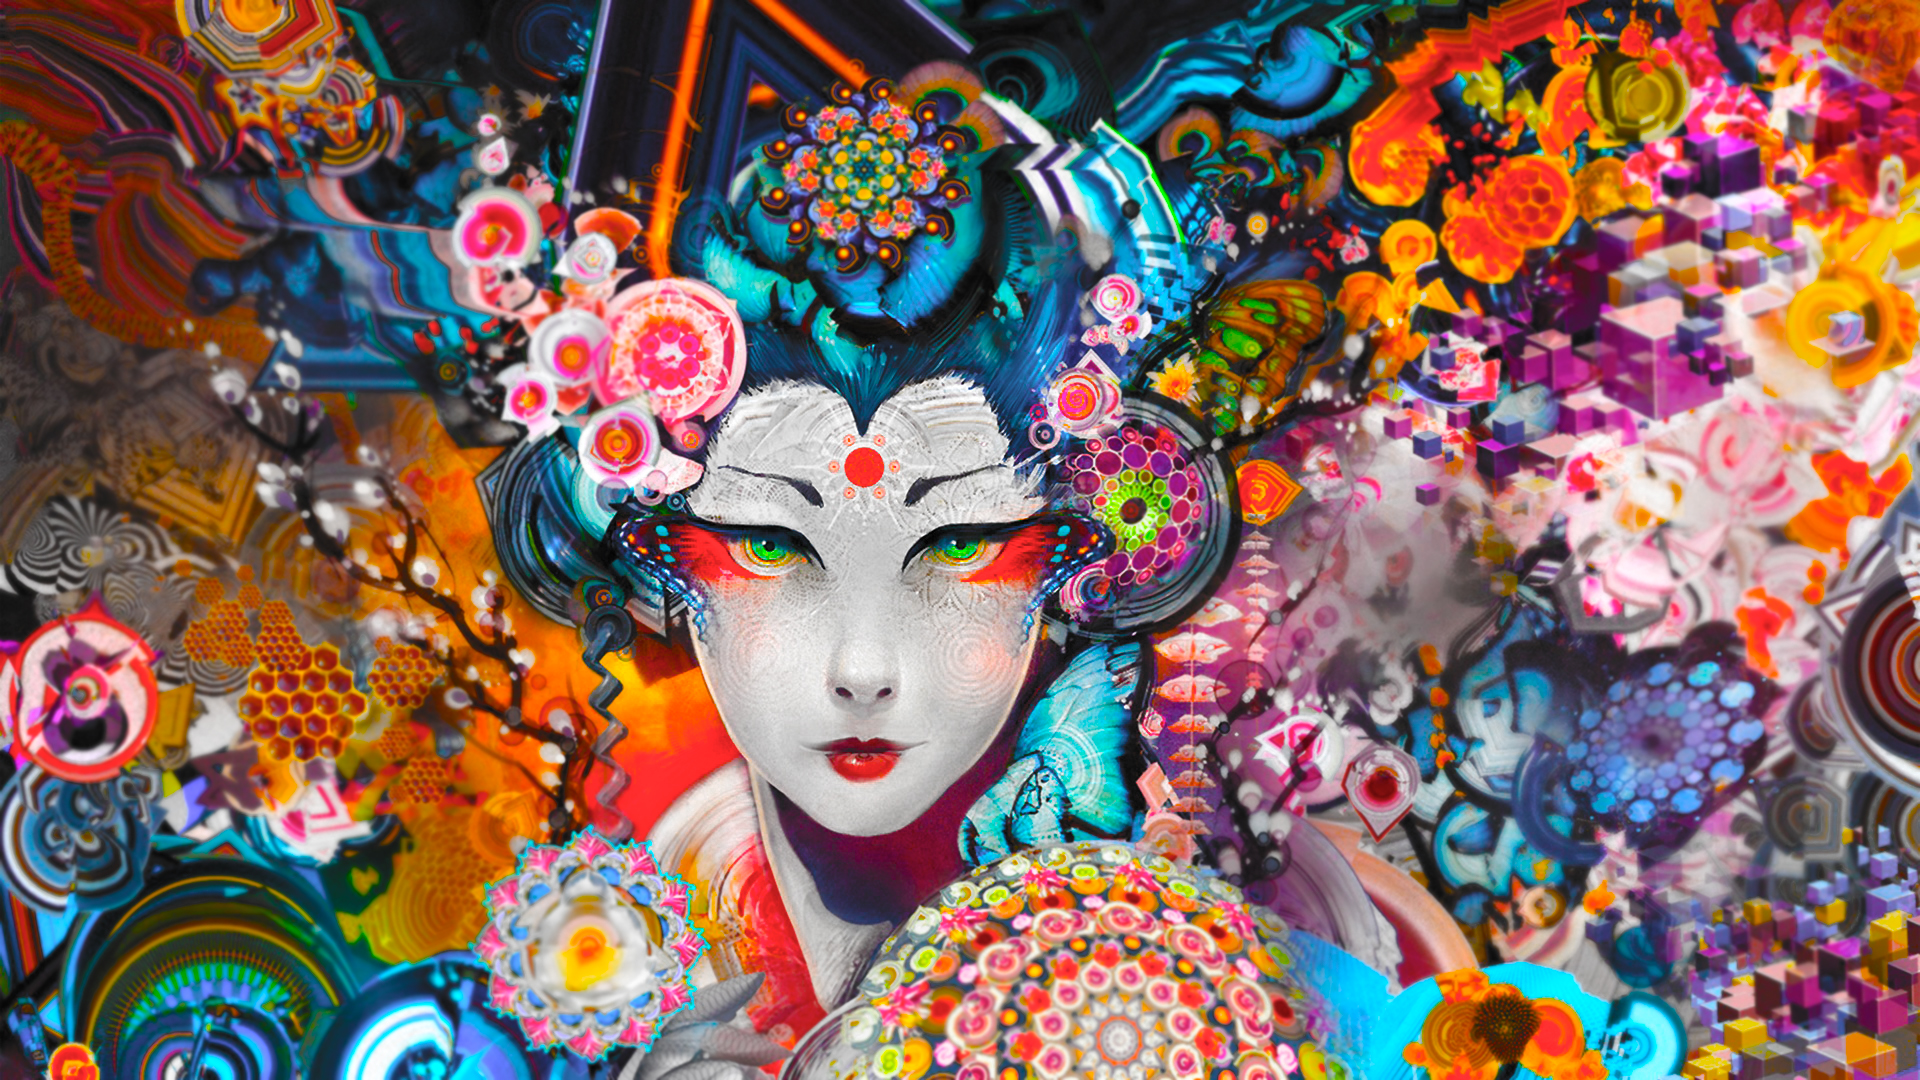 Japanese Psychedelic Wallpaper 1920x1080